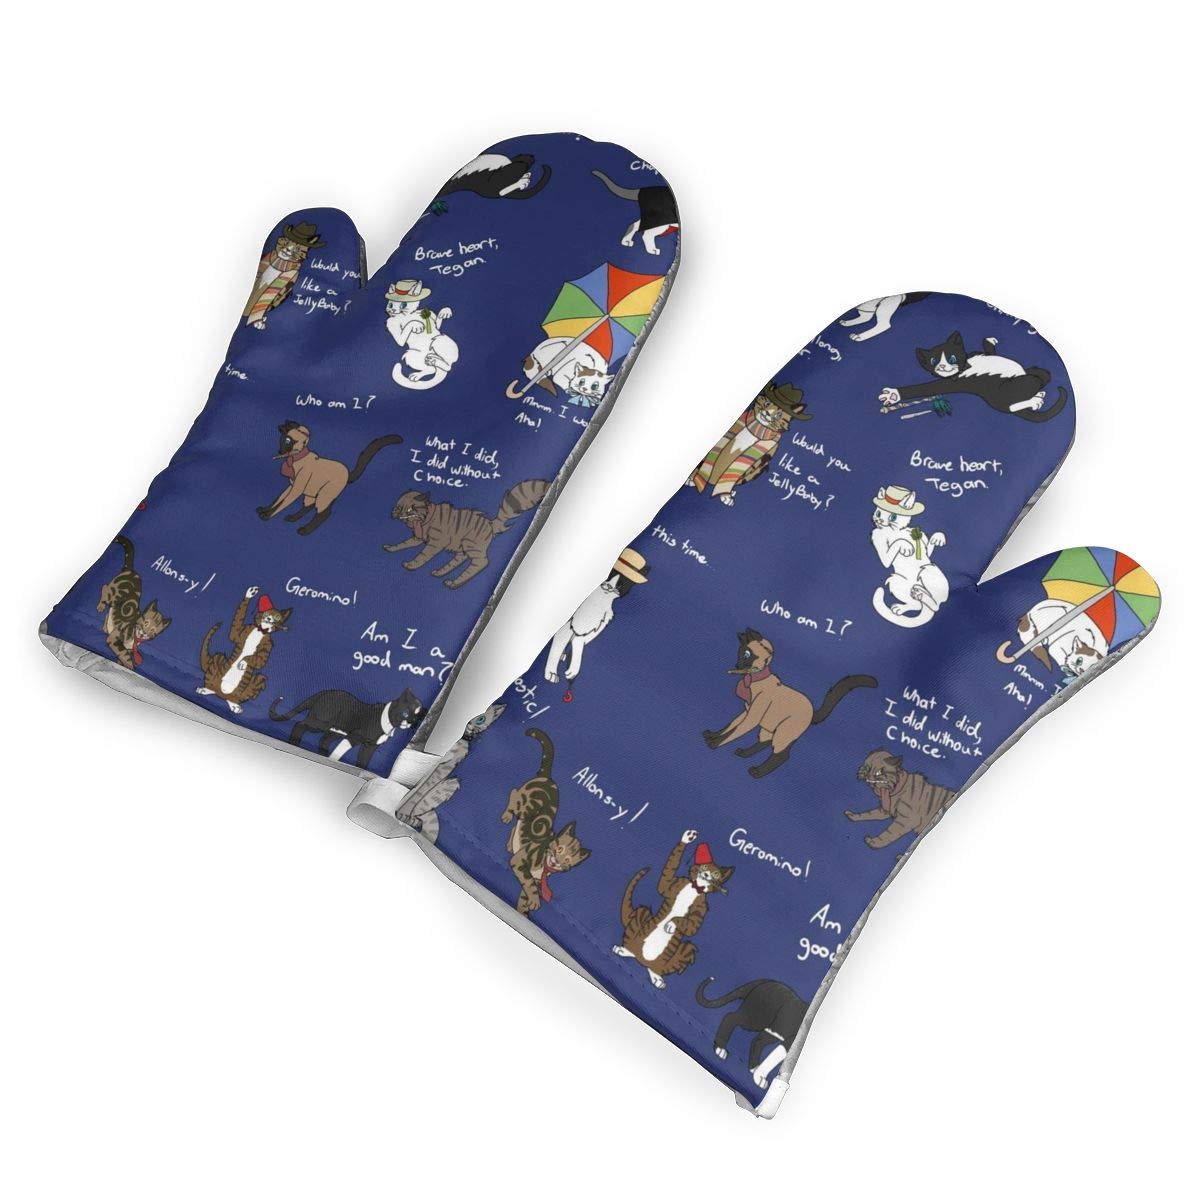 Oven Mitts 5.5 X 12 In Doctor Who Cats Non-Slip Kitchen Oven Gloves Heat Resistant Washable Cotton Lining